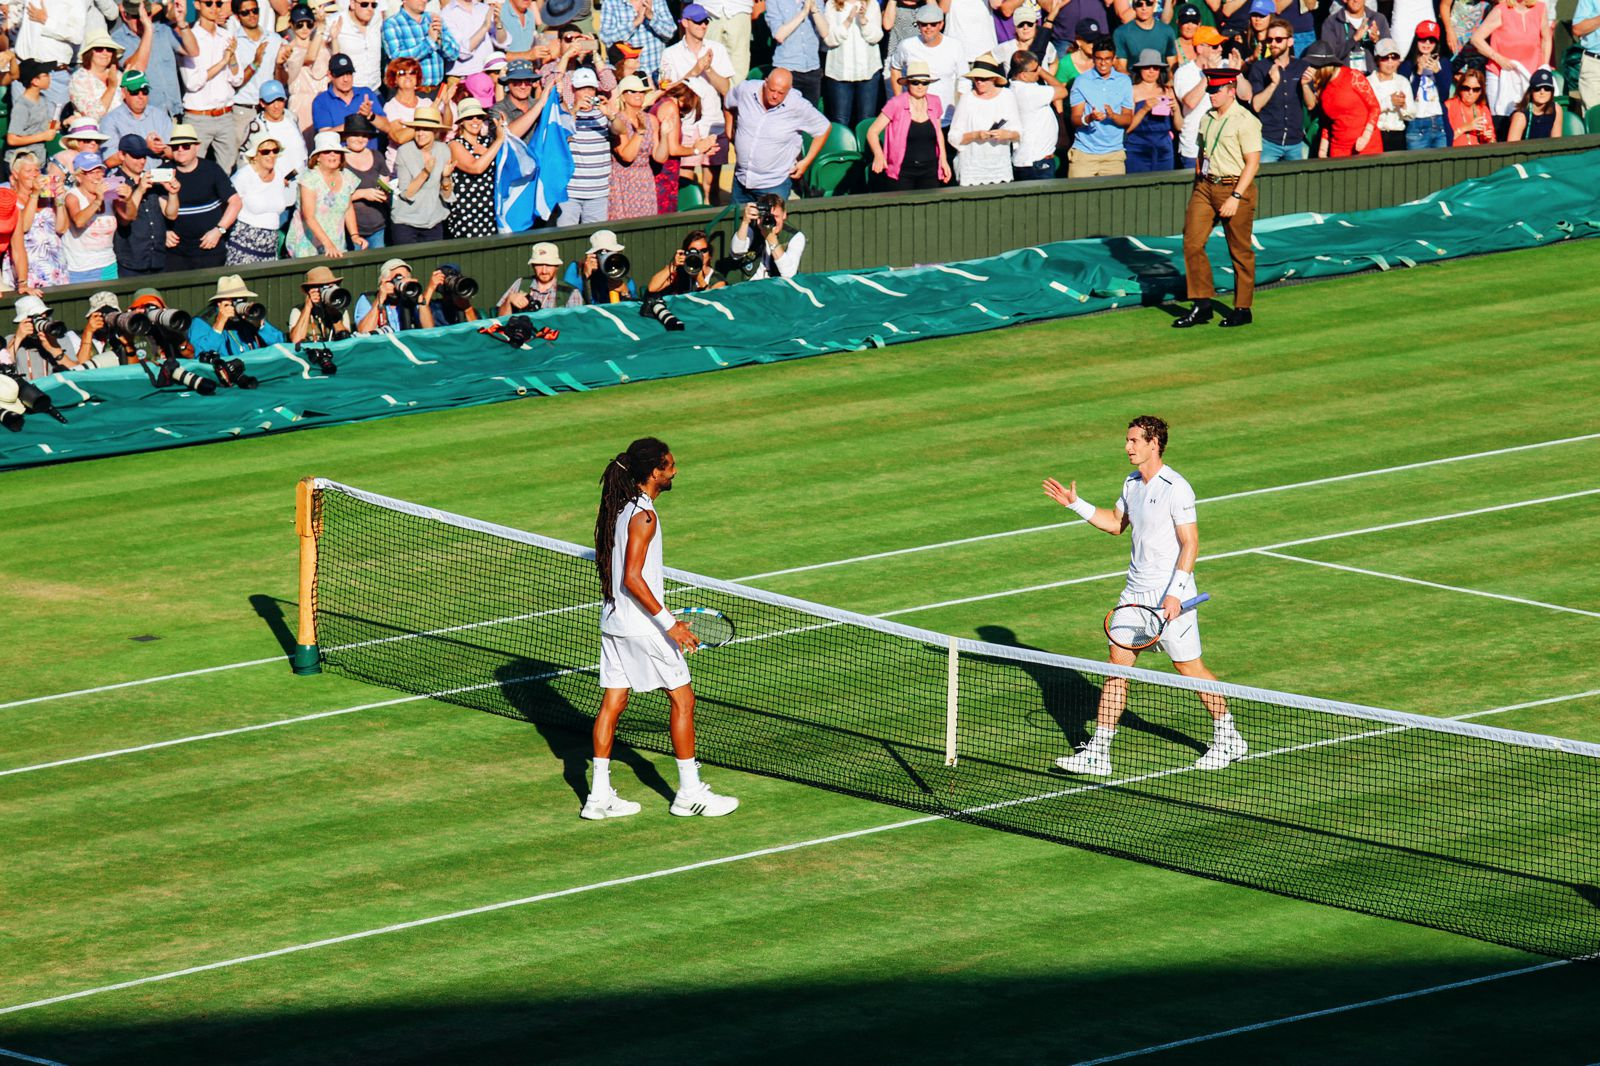 A DAY IN WIMBLEDON... || Watching Andy Murray, Rafael Nadal and Johanna Konta's Tennis Matches (29)